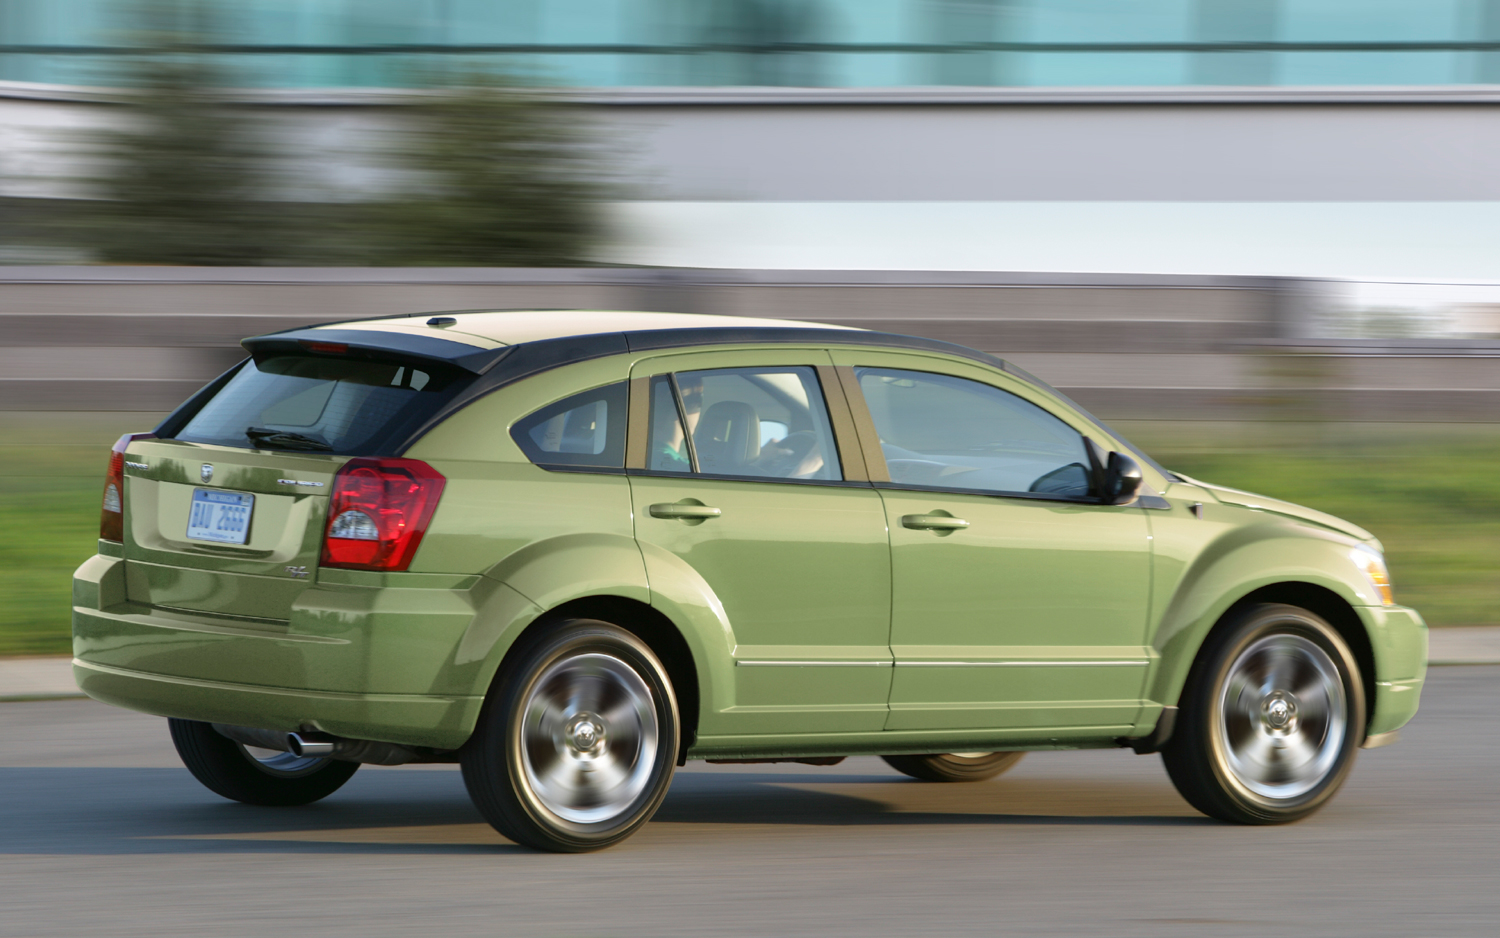 End of an Era: Last Dodge Caliber Built in Illinois